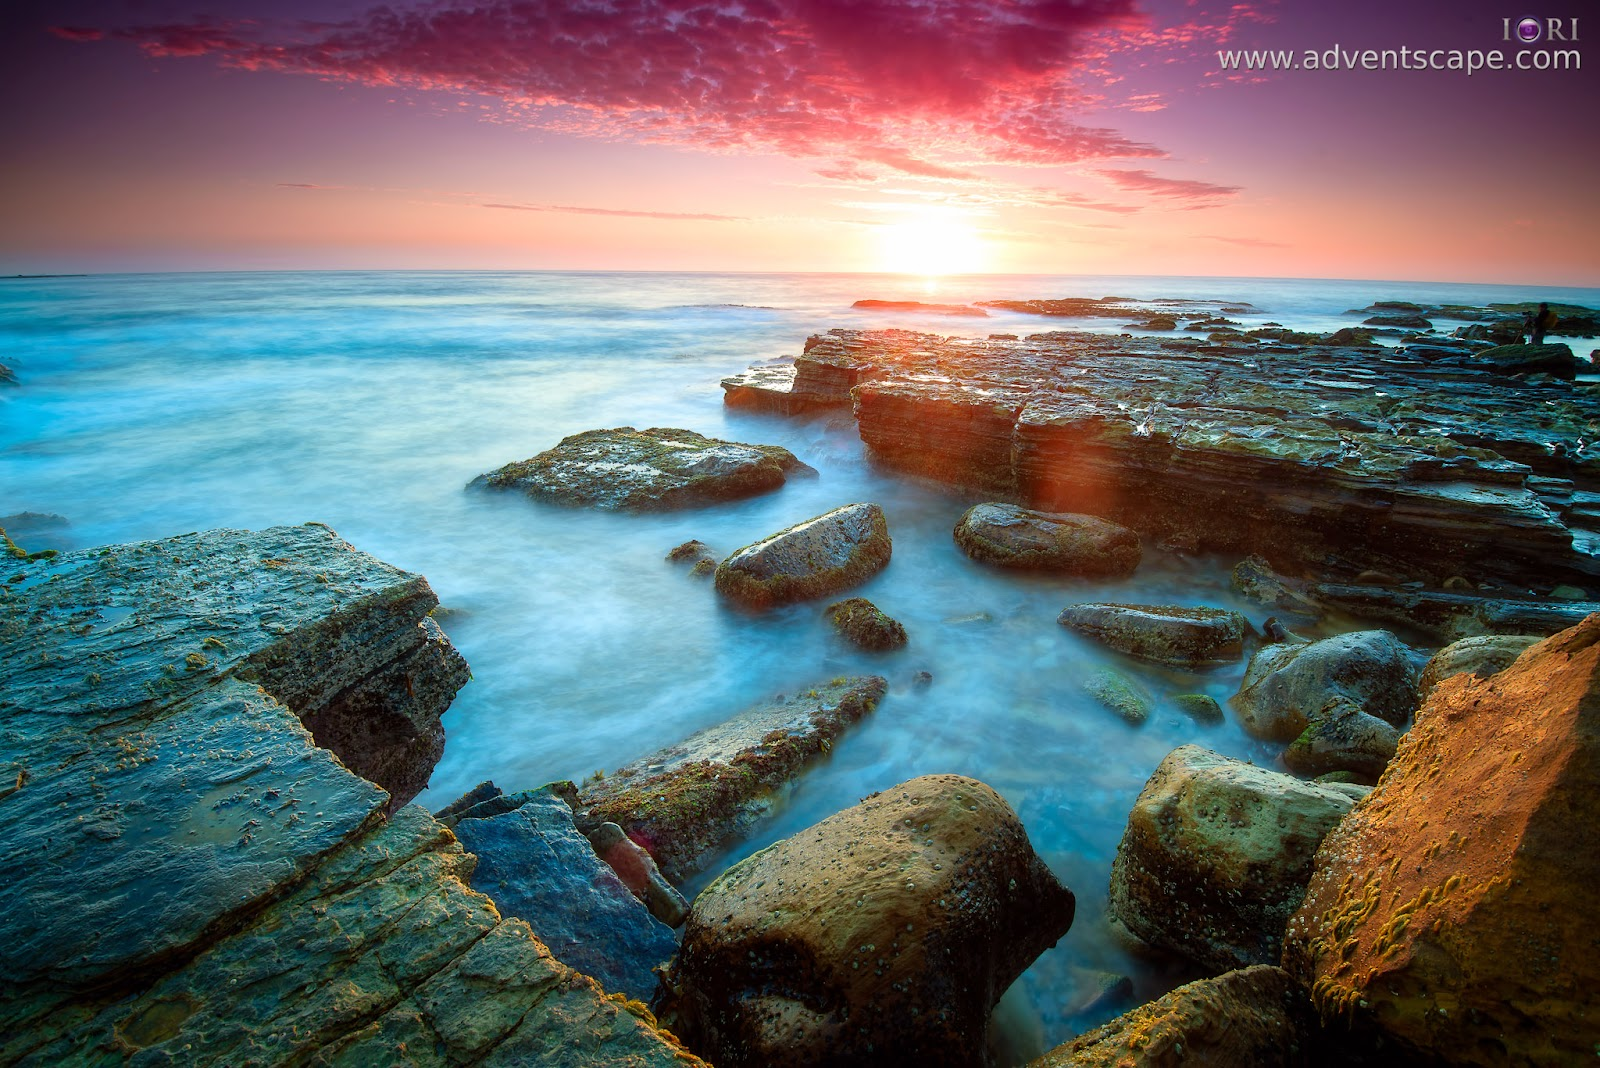 Australia, Australian Landscape Photographer, beach, coastline, landscape, New South Wales, NSW, Philip Avellana, seascape, shoreline, Turimetta, raging heavens